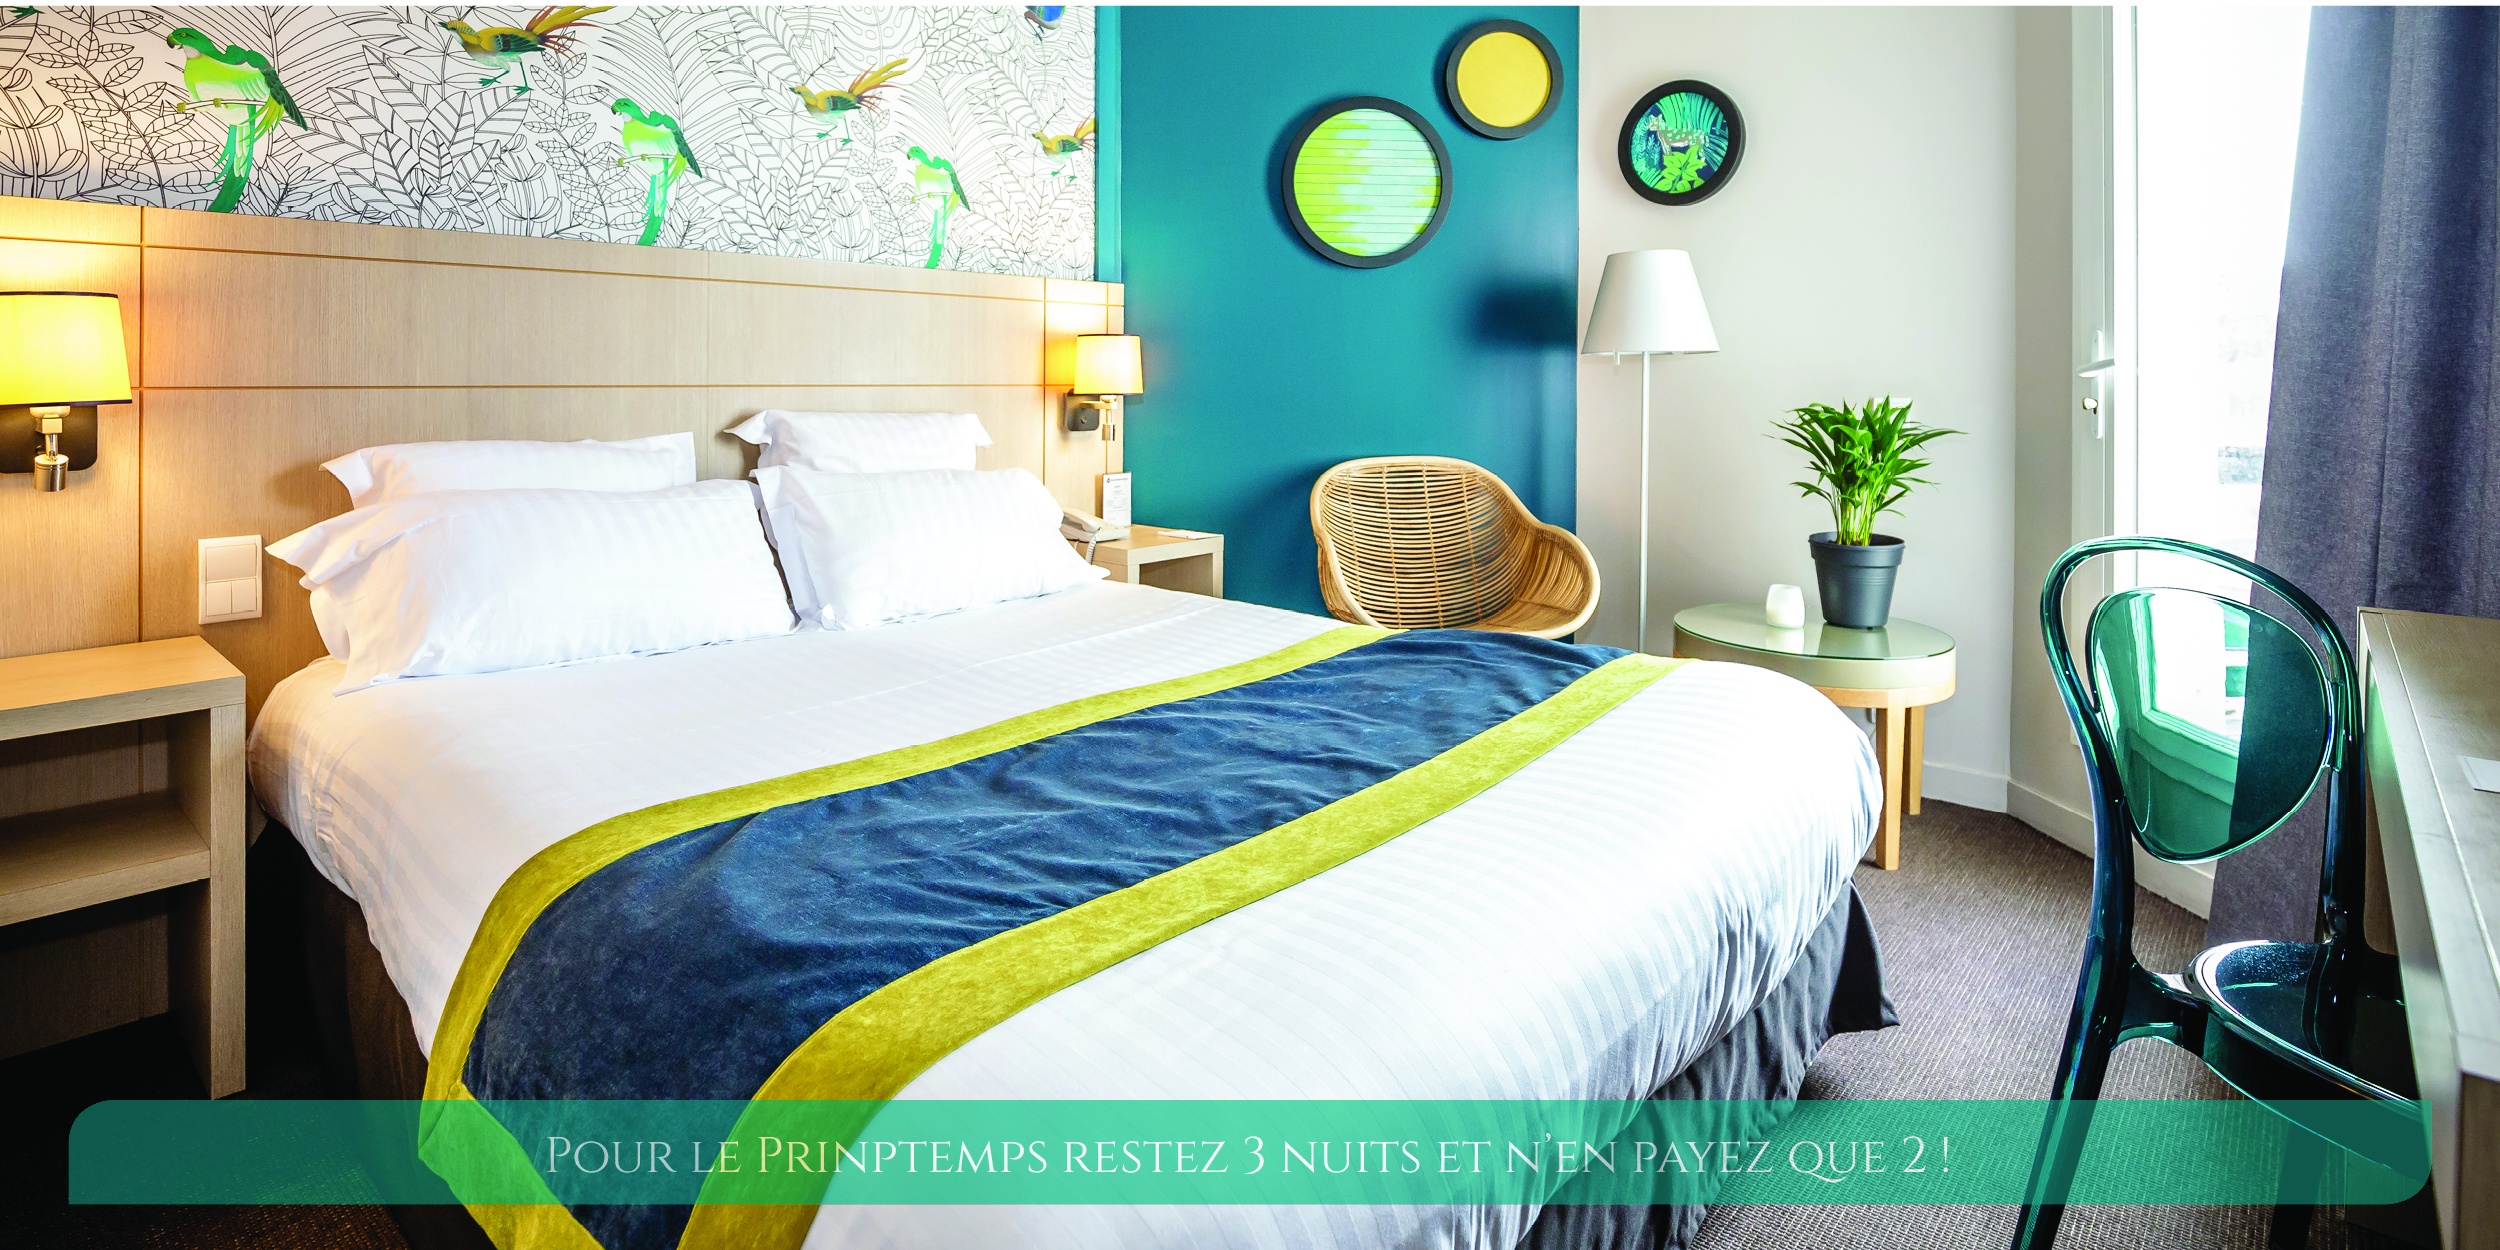 offre speciale hotel vannes 2 nuits 3 hotel pas cher vannes hotel best western vannes. Black Bedroom Furniture Sets. Home Design Ideas